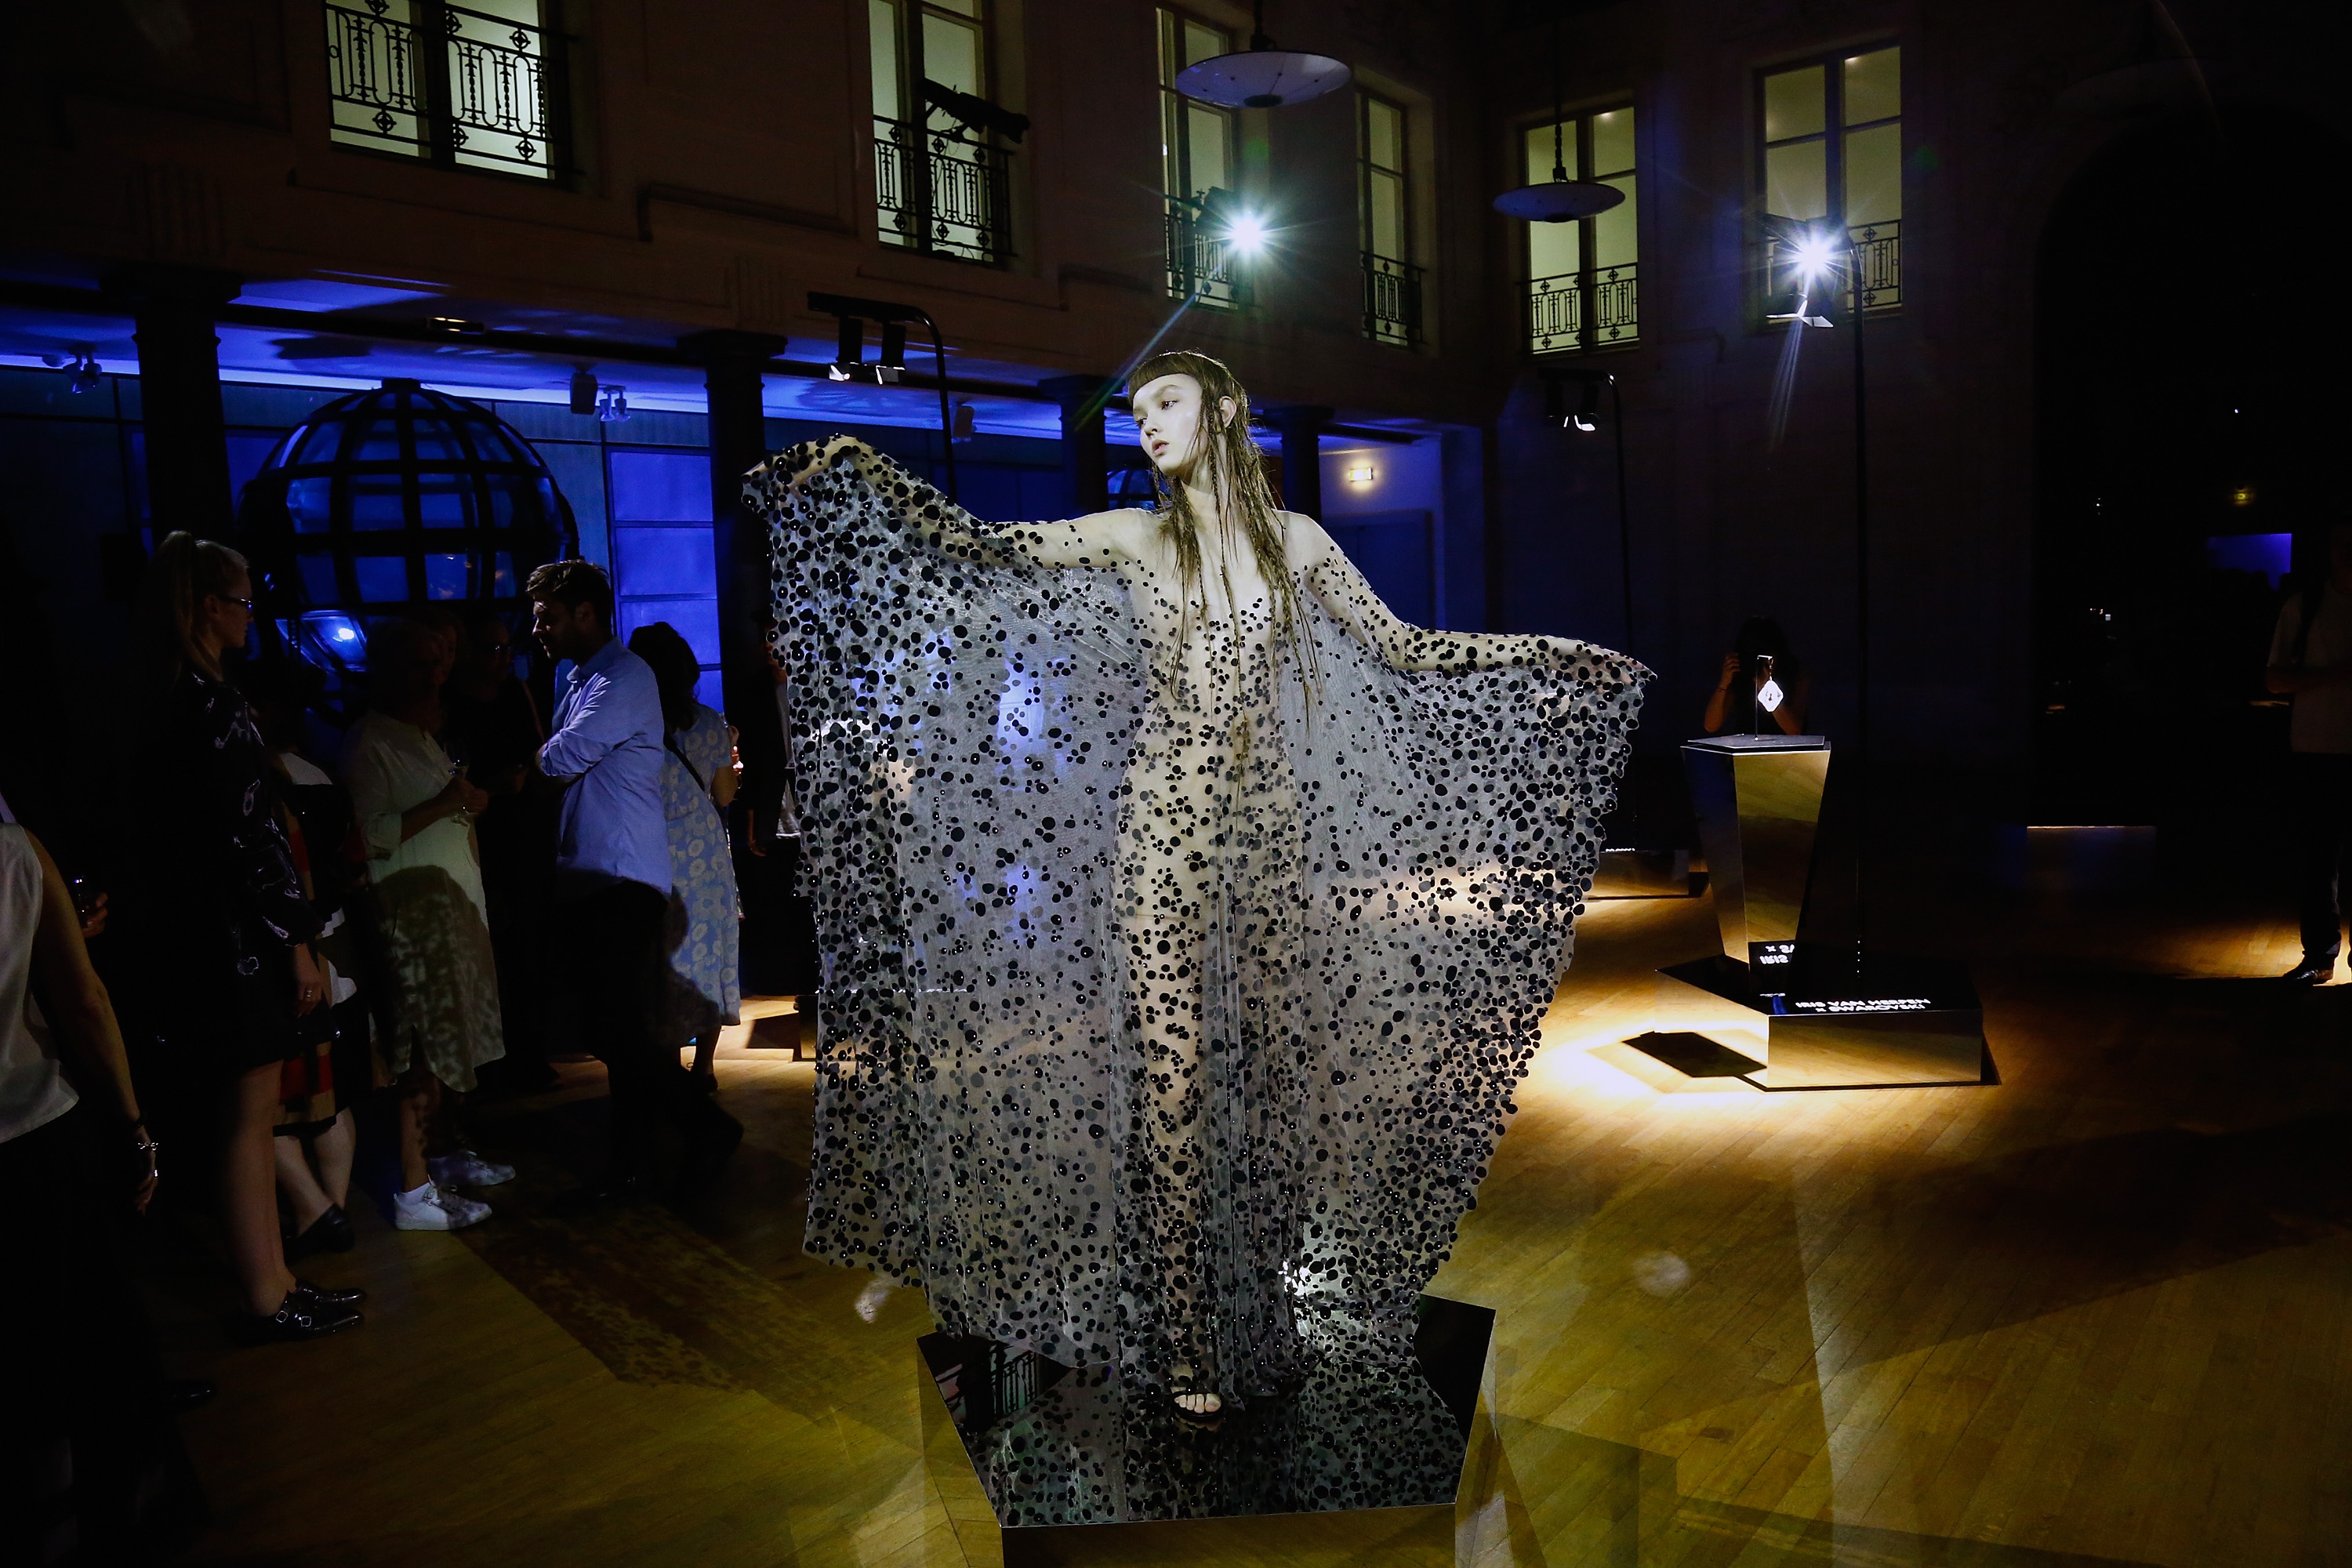 PARIS, FRANCE - JULY 03:  A dancer performs at the Iris Van Herpen X Swarovski Cocktail Haute Couture Fall/Winter 2017-2018 show as part of Haute Couture Paris Fashion Week on July 3, 2017 in Paris, France.  (Photo by Julien Hekimian/Getty Images)